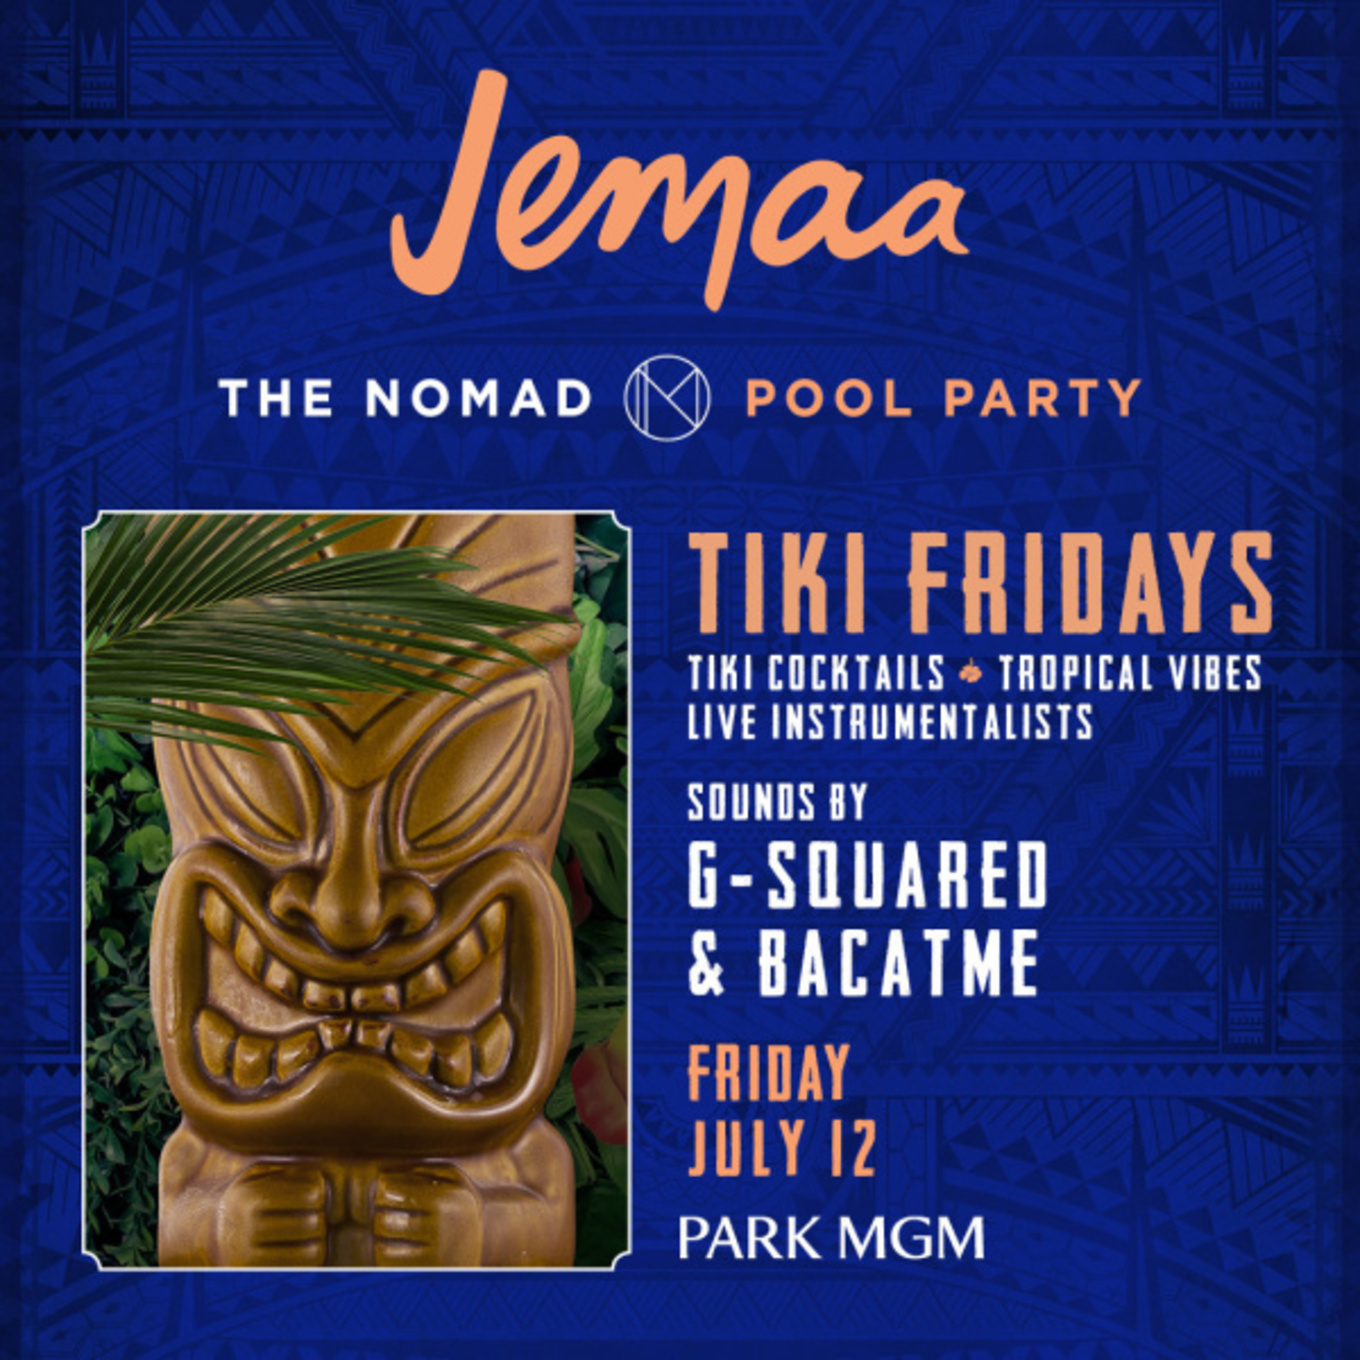 Jemaa feat  TIKI FRIDAYS WITH G-SQUARED & BACATME - Tickets